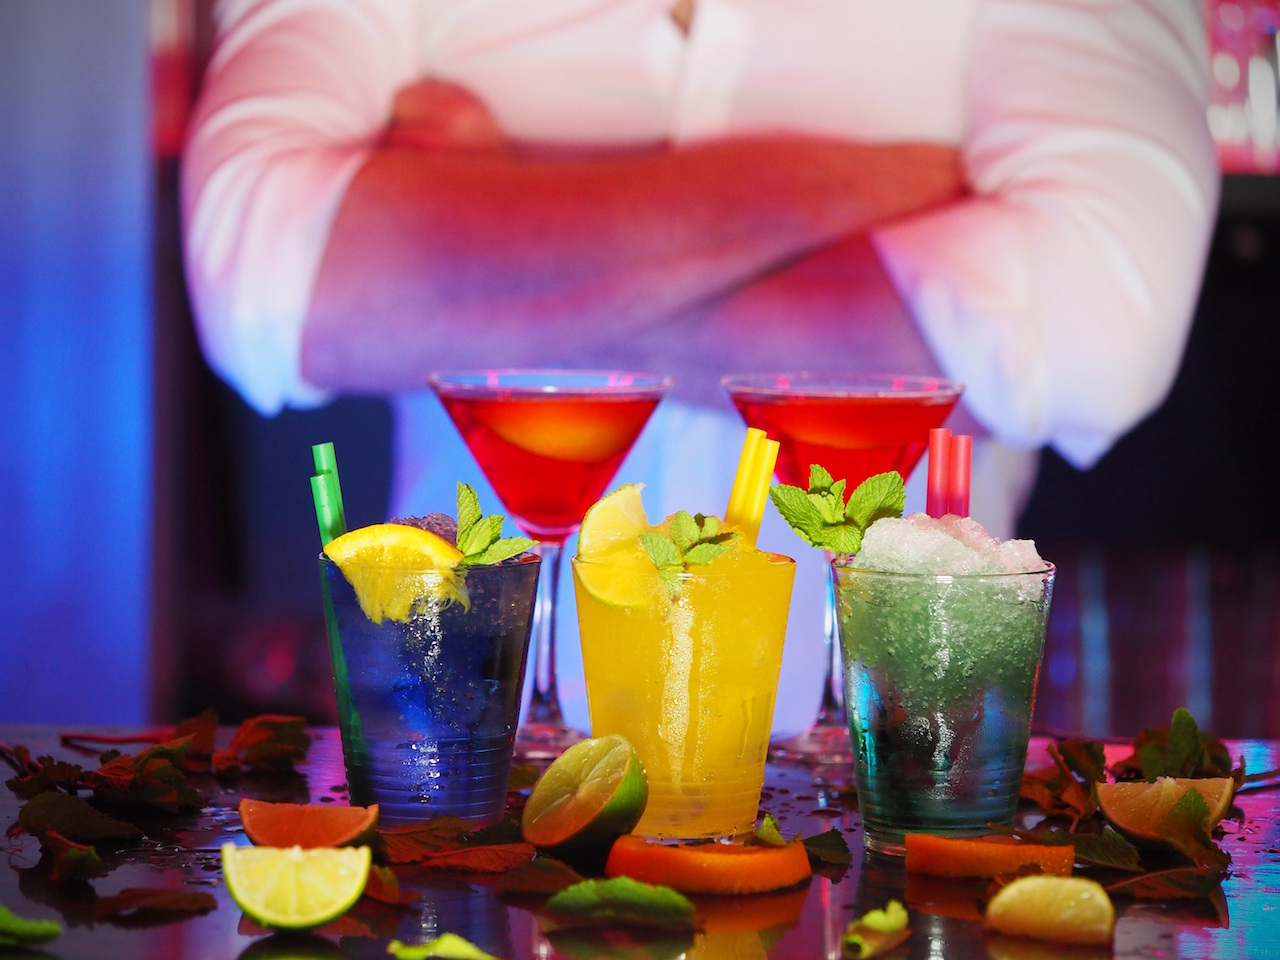 Bright alcoholic drinks by energepic from stocksnap.io